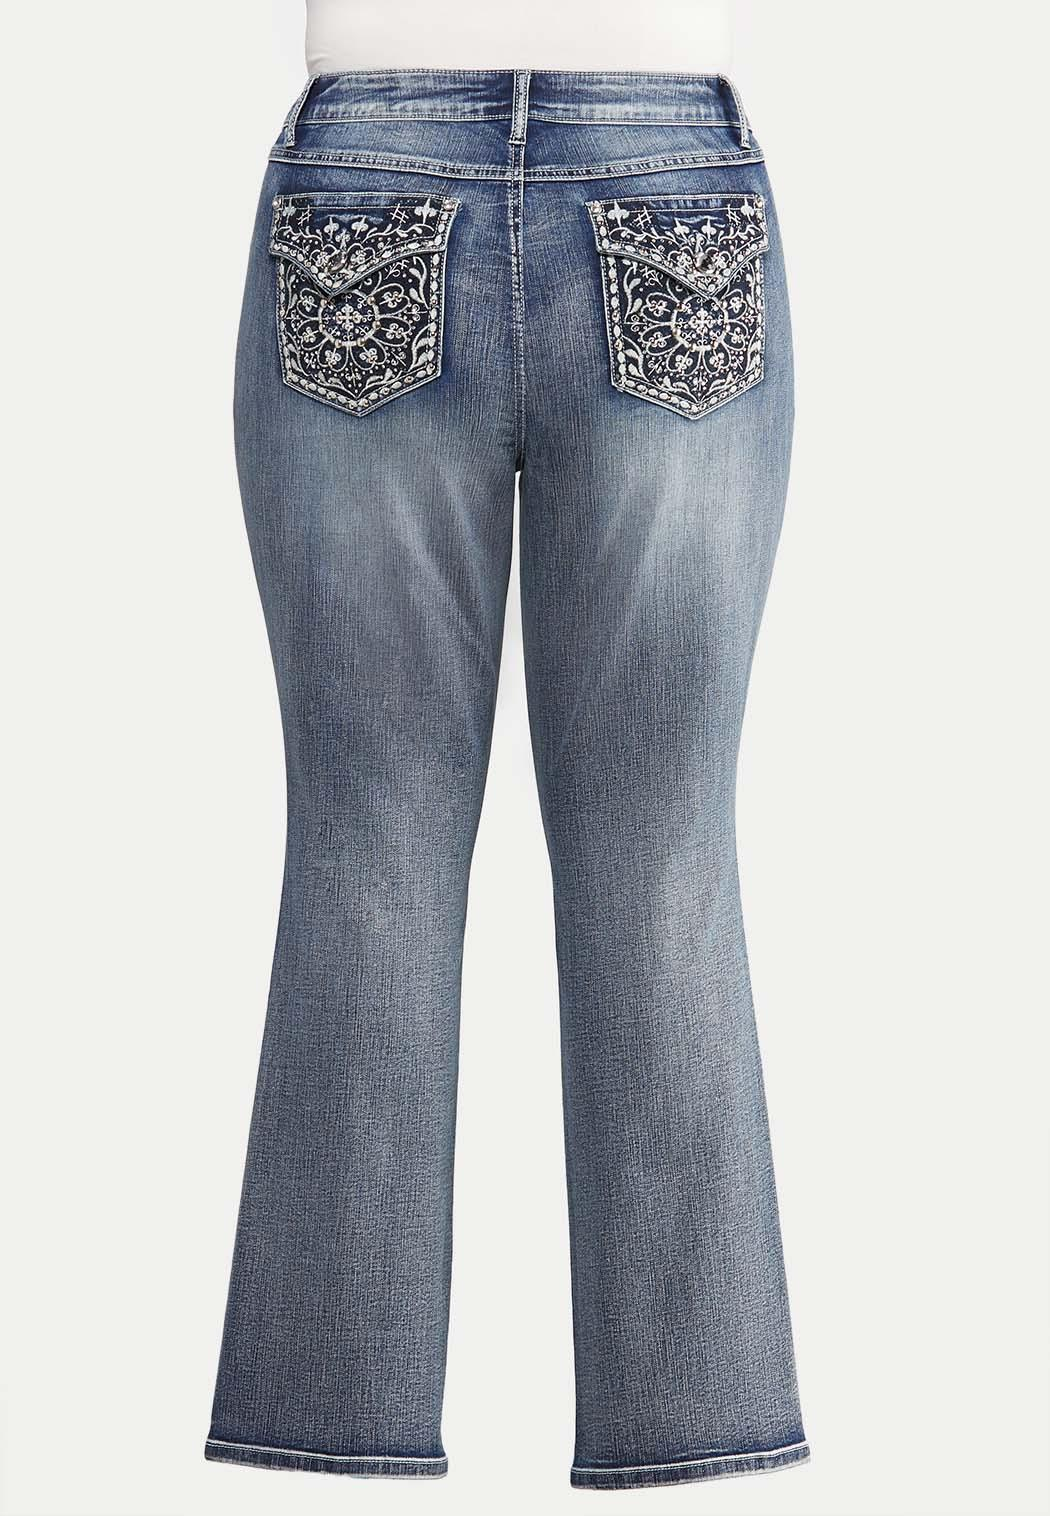 Plus Extended Curvy Floral Studded Jeans